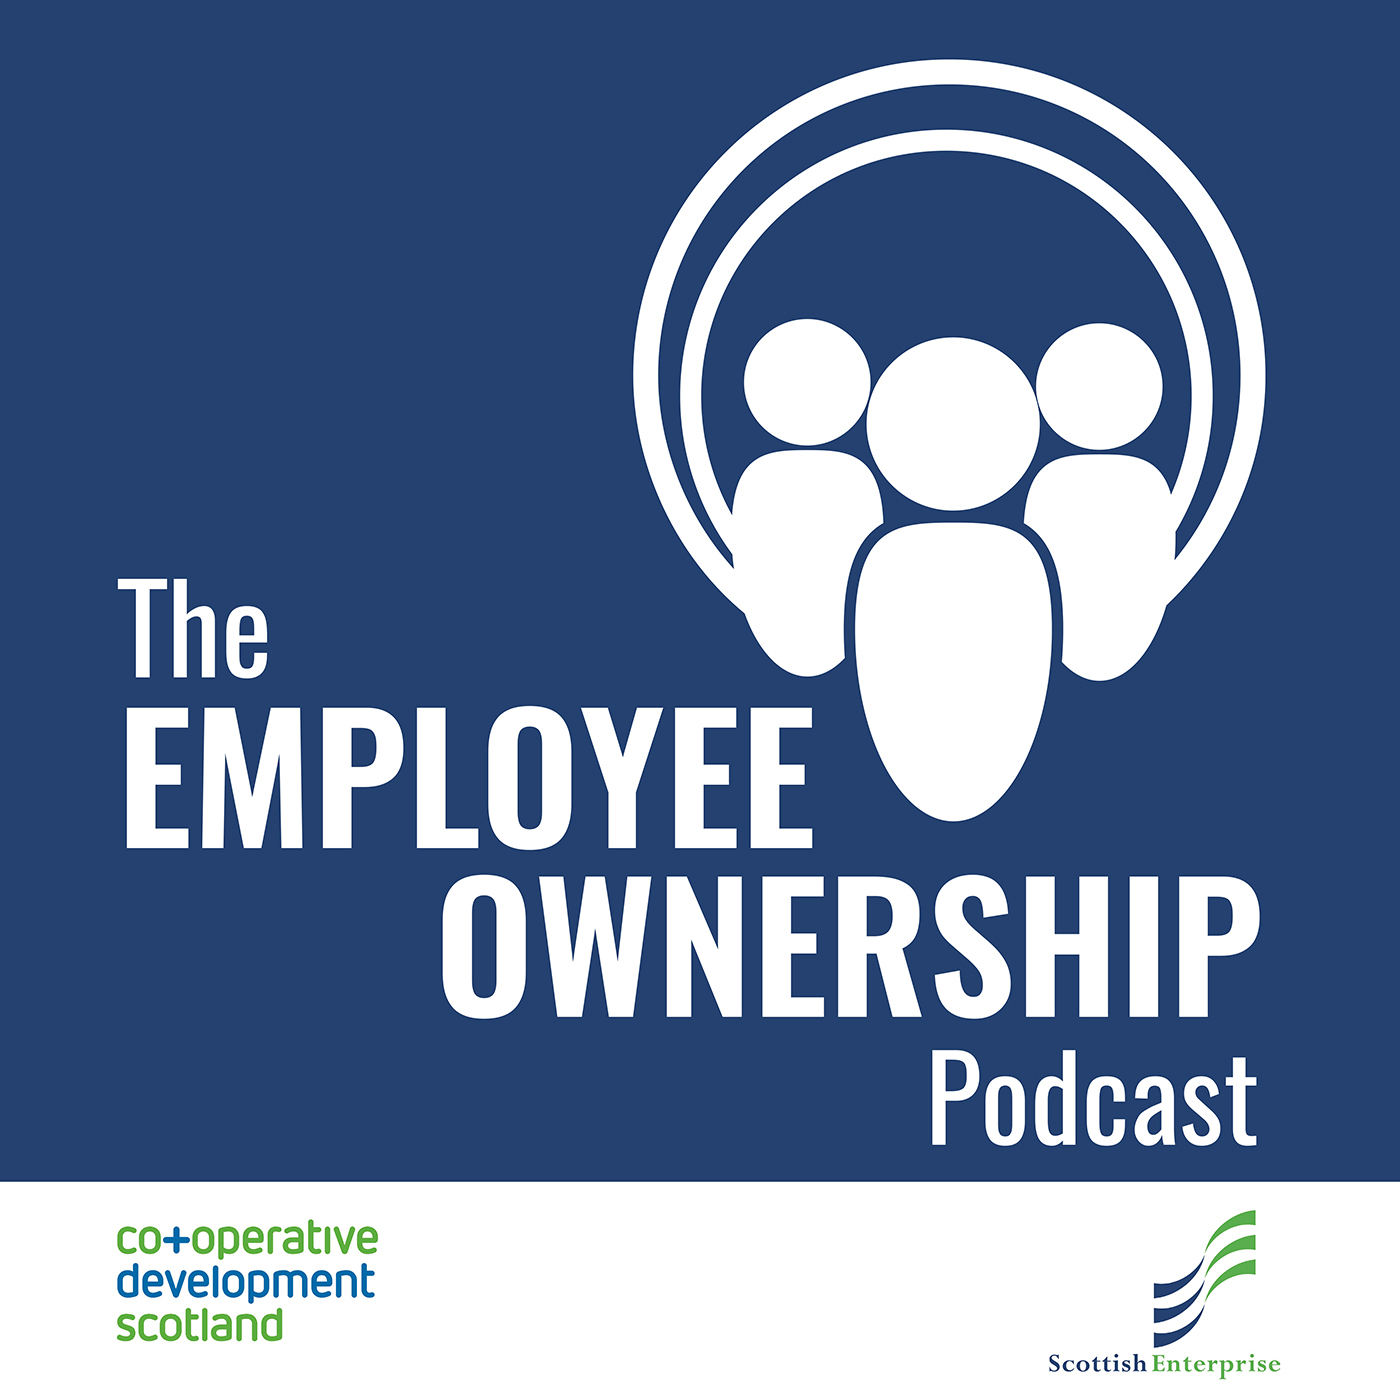 The Employee Ownership Podcast show art